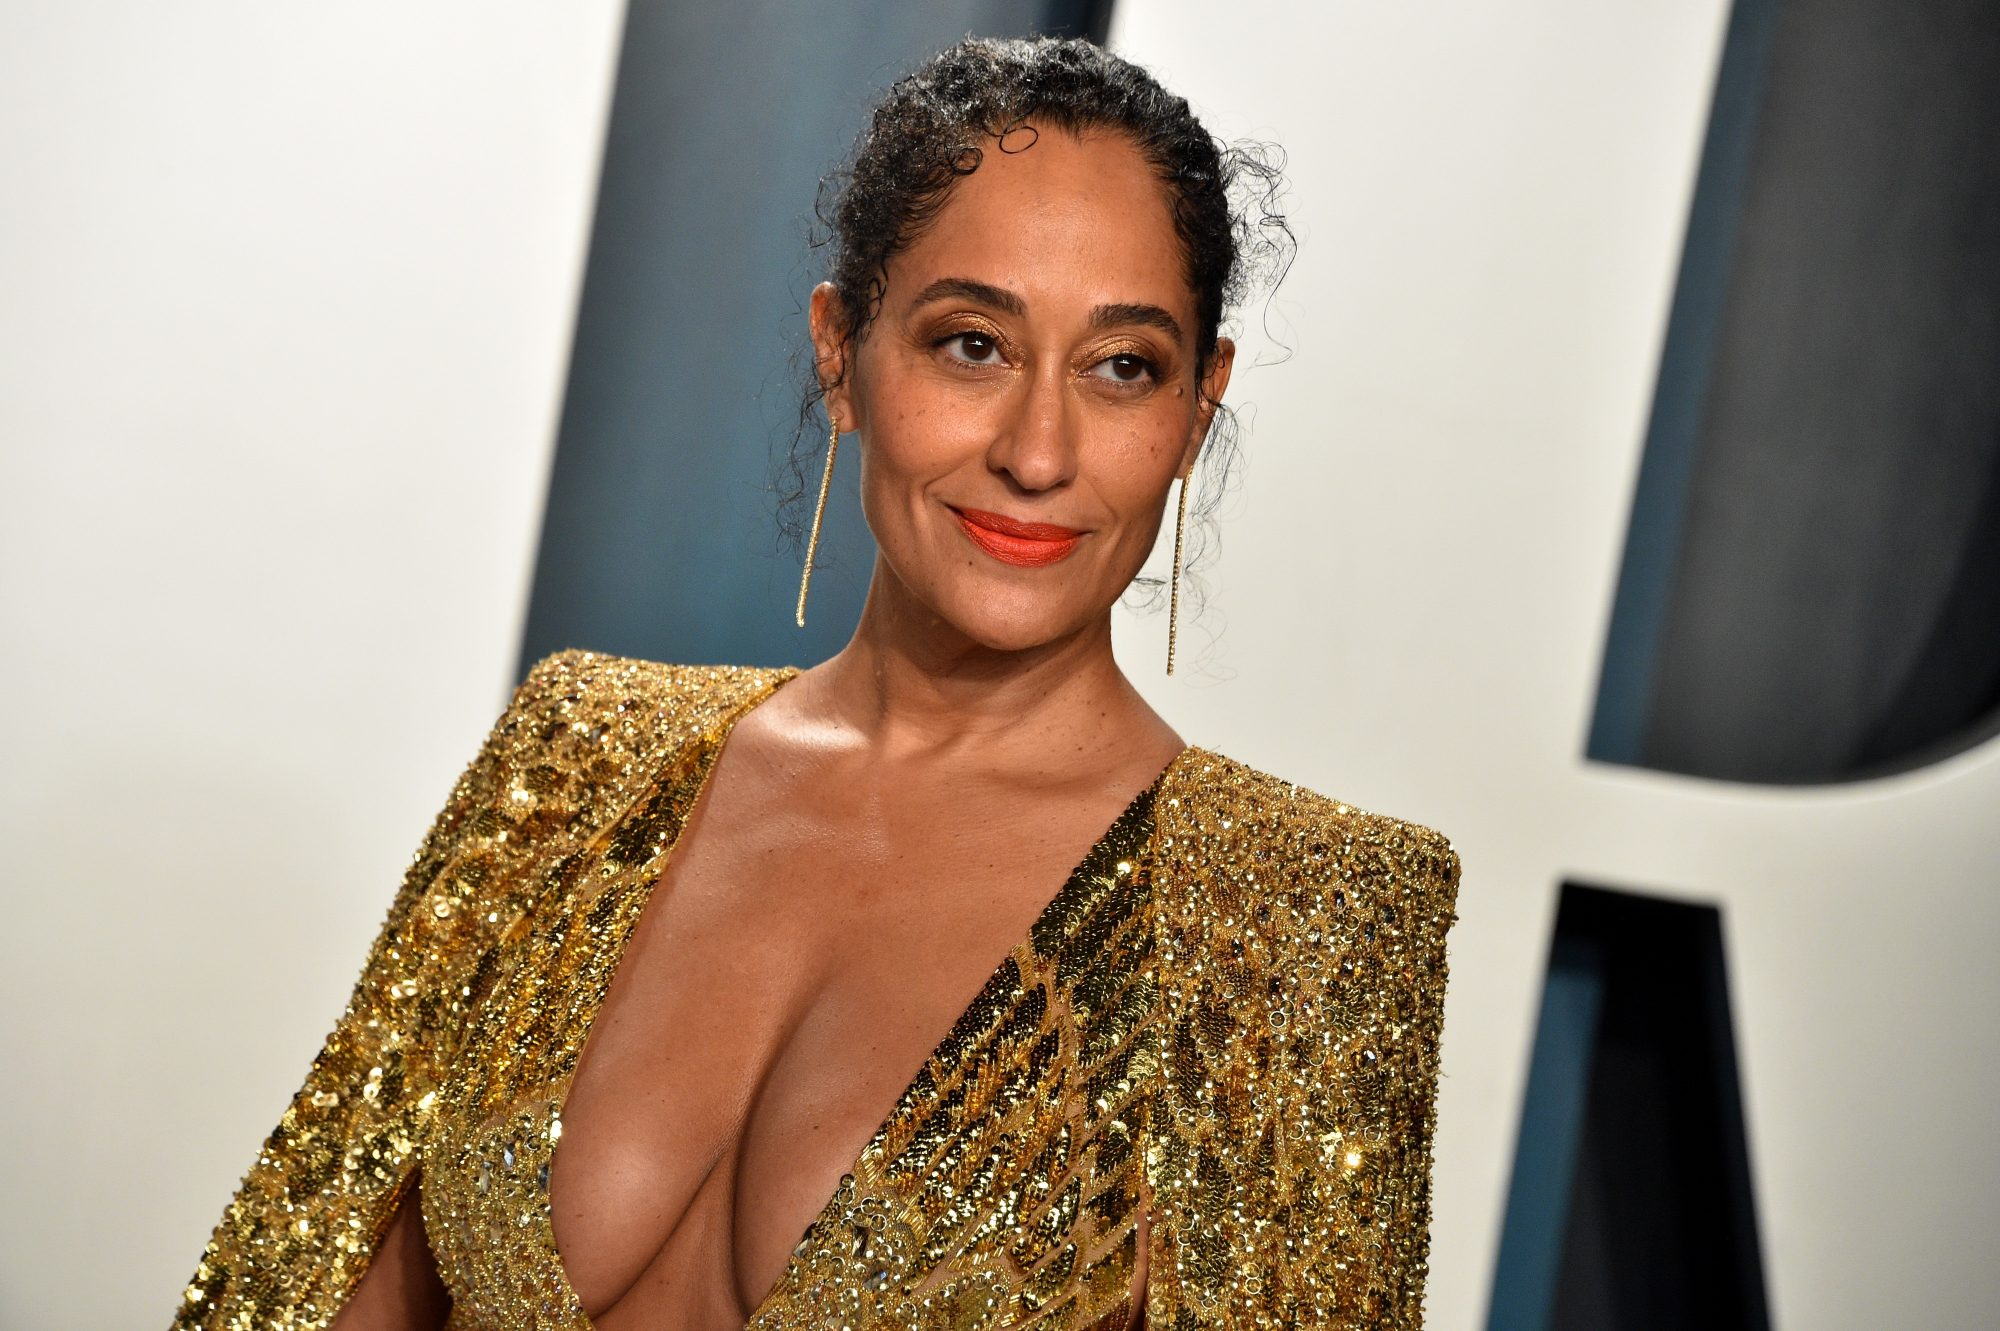 tracee ellis ross photoshop clap back